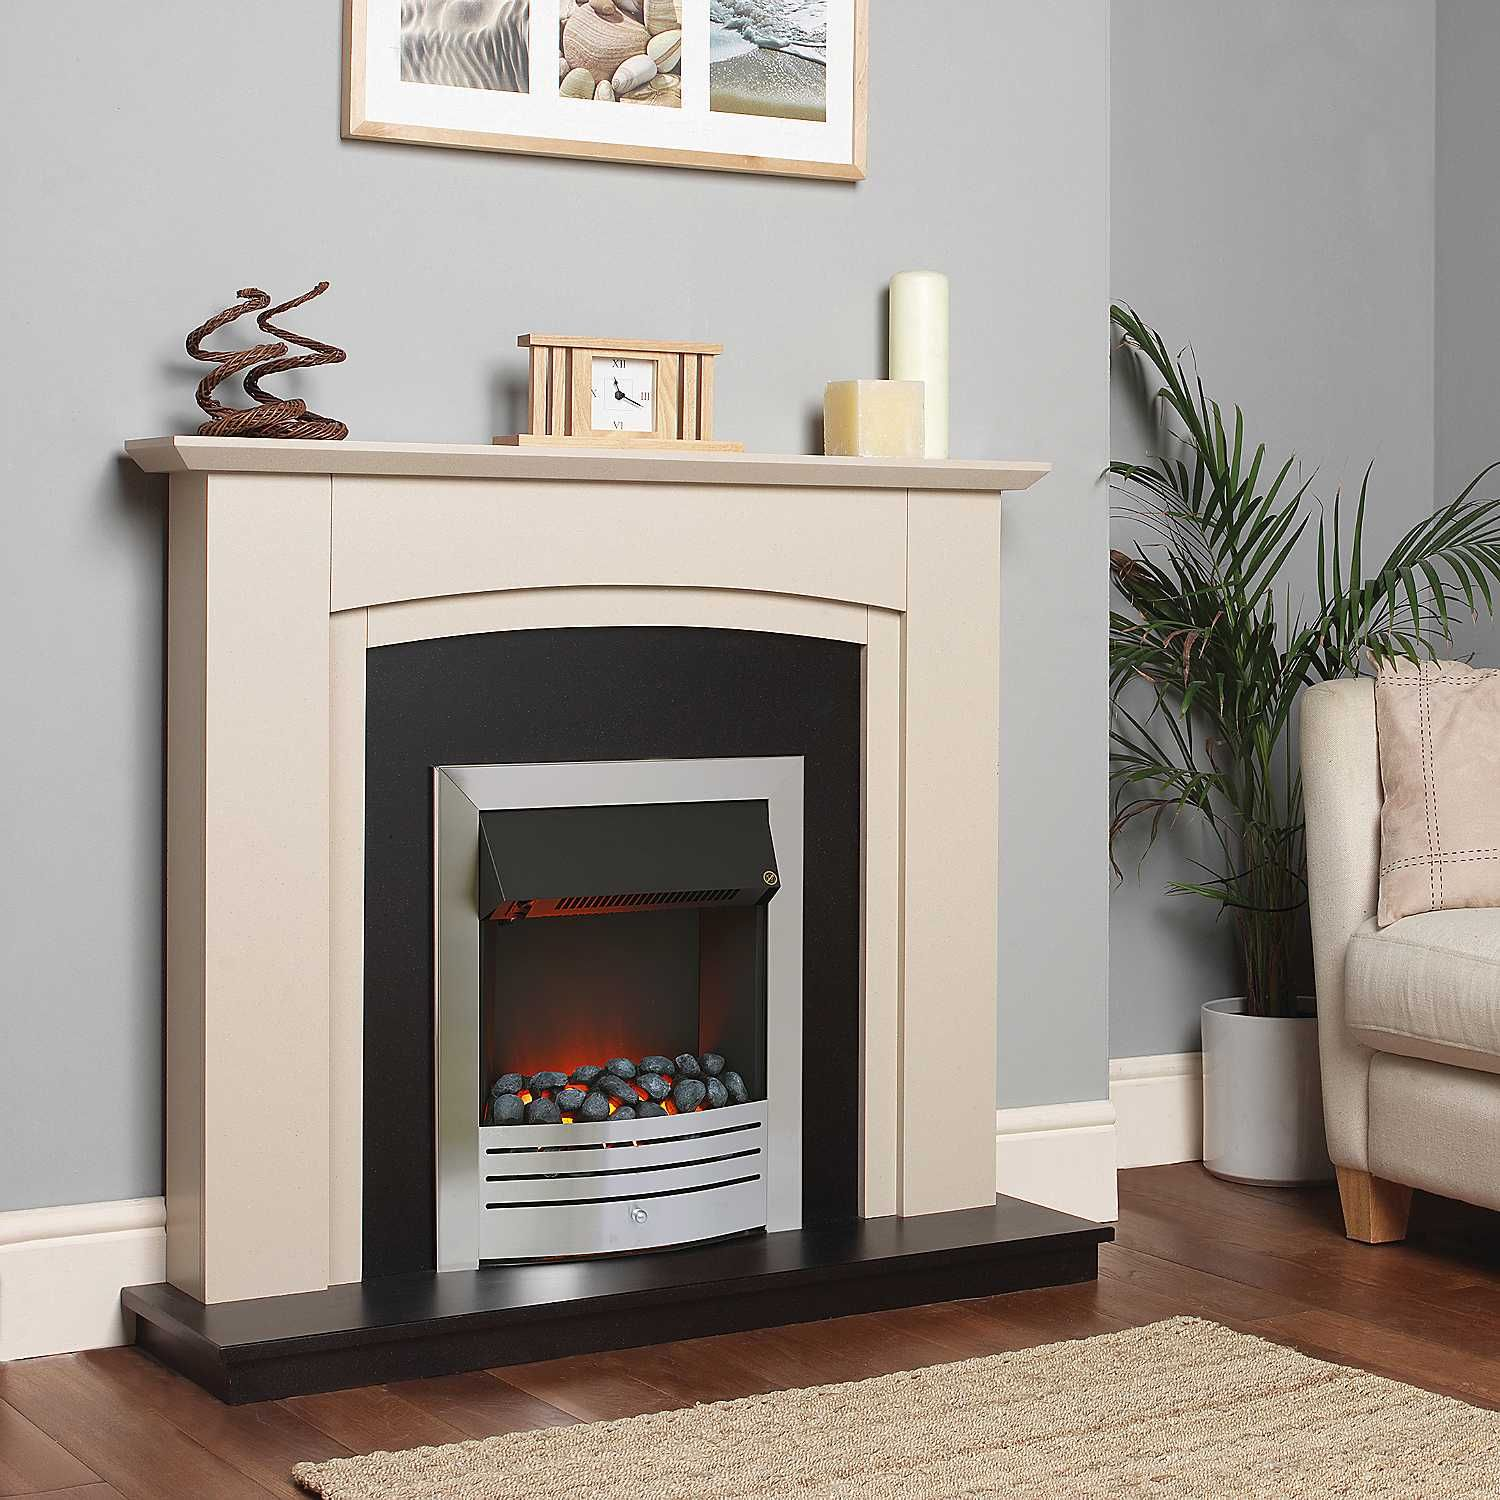 Derwent sandstone electric fire suite by katell pinterest